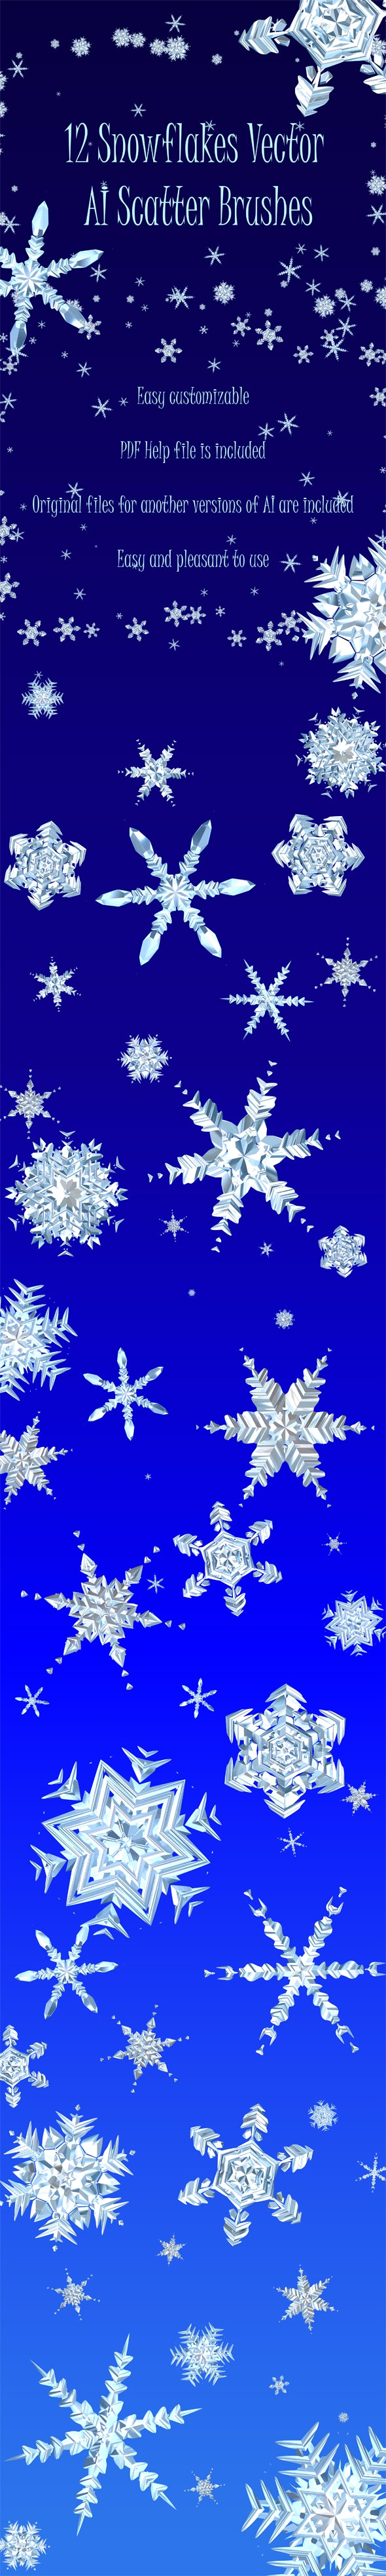 12 New Year Snowflake Brushes - Vector Adobe Illustrator Scatter Christmas Brushes - Miscellaneous Brushes